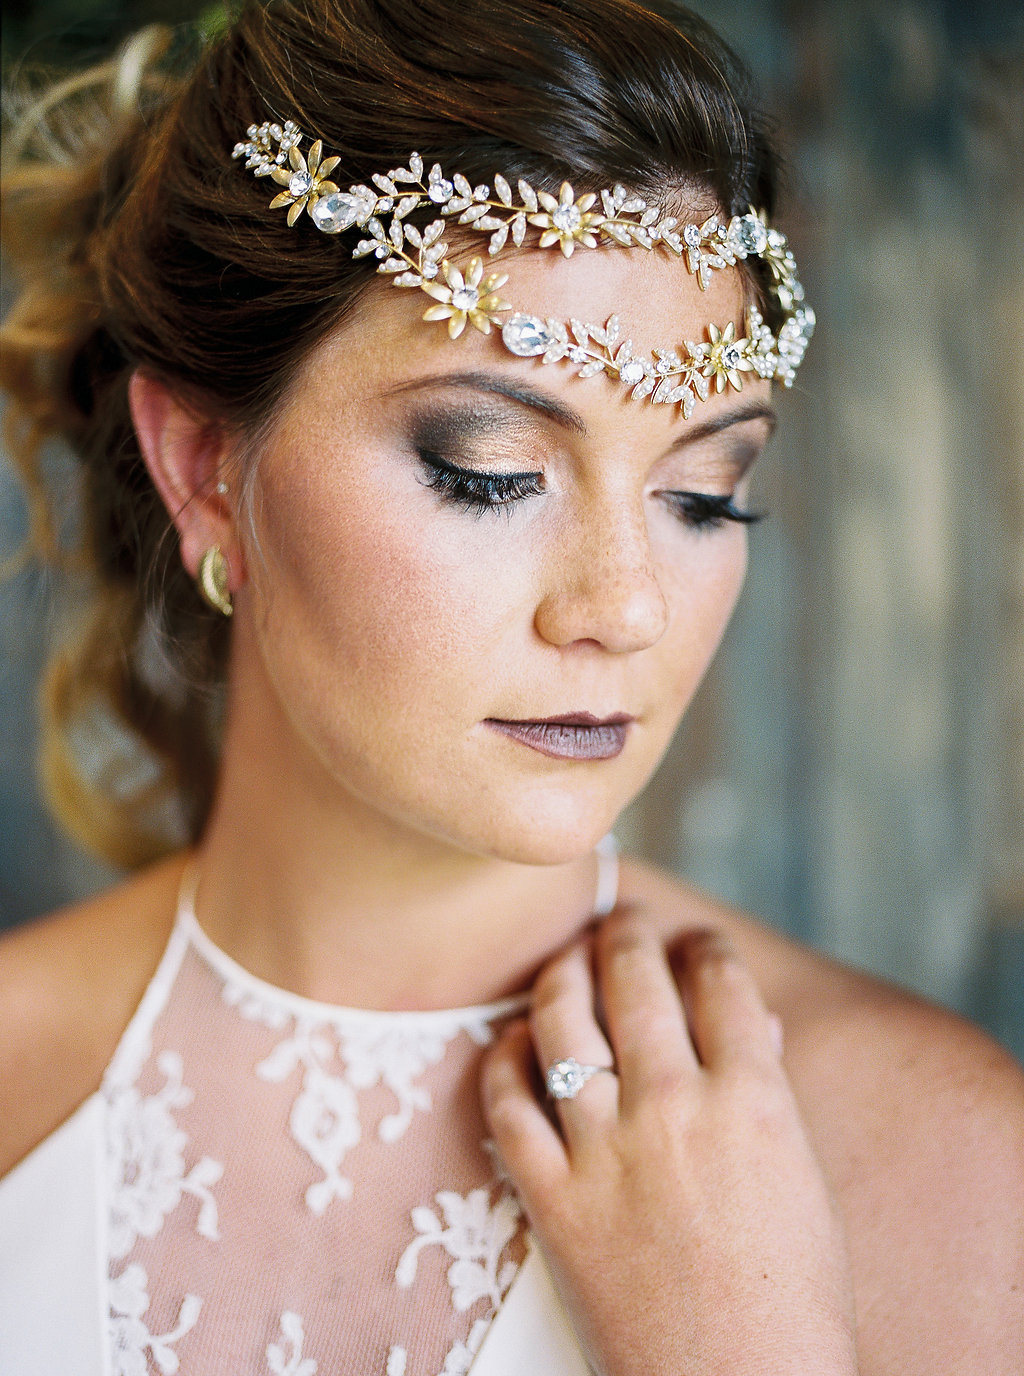 bridal hair accessories - photo by Alexandra Elise Photography http://ruffledblog.com/cobalt-and-amber-wedding-inspiration